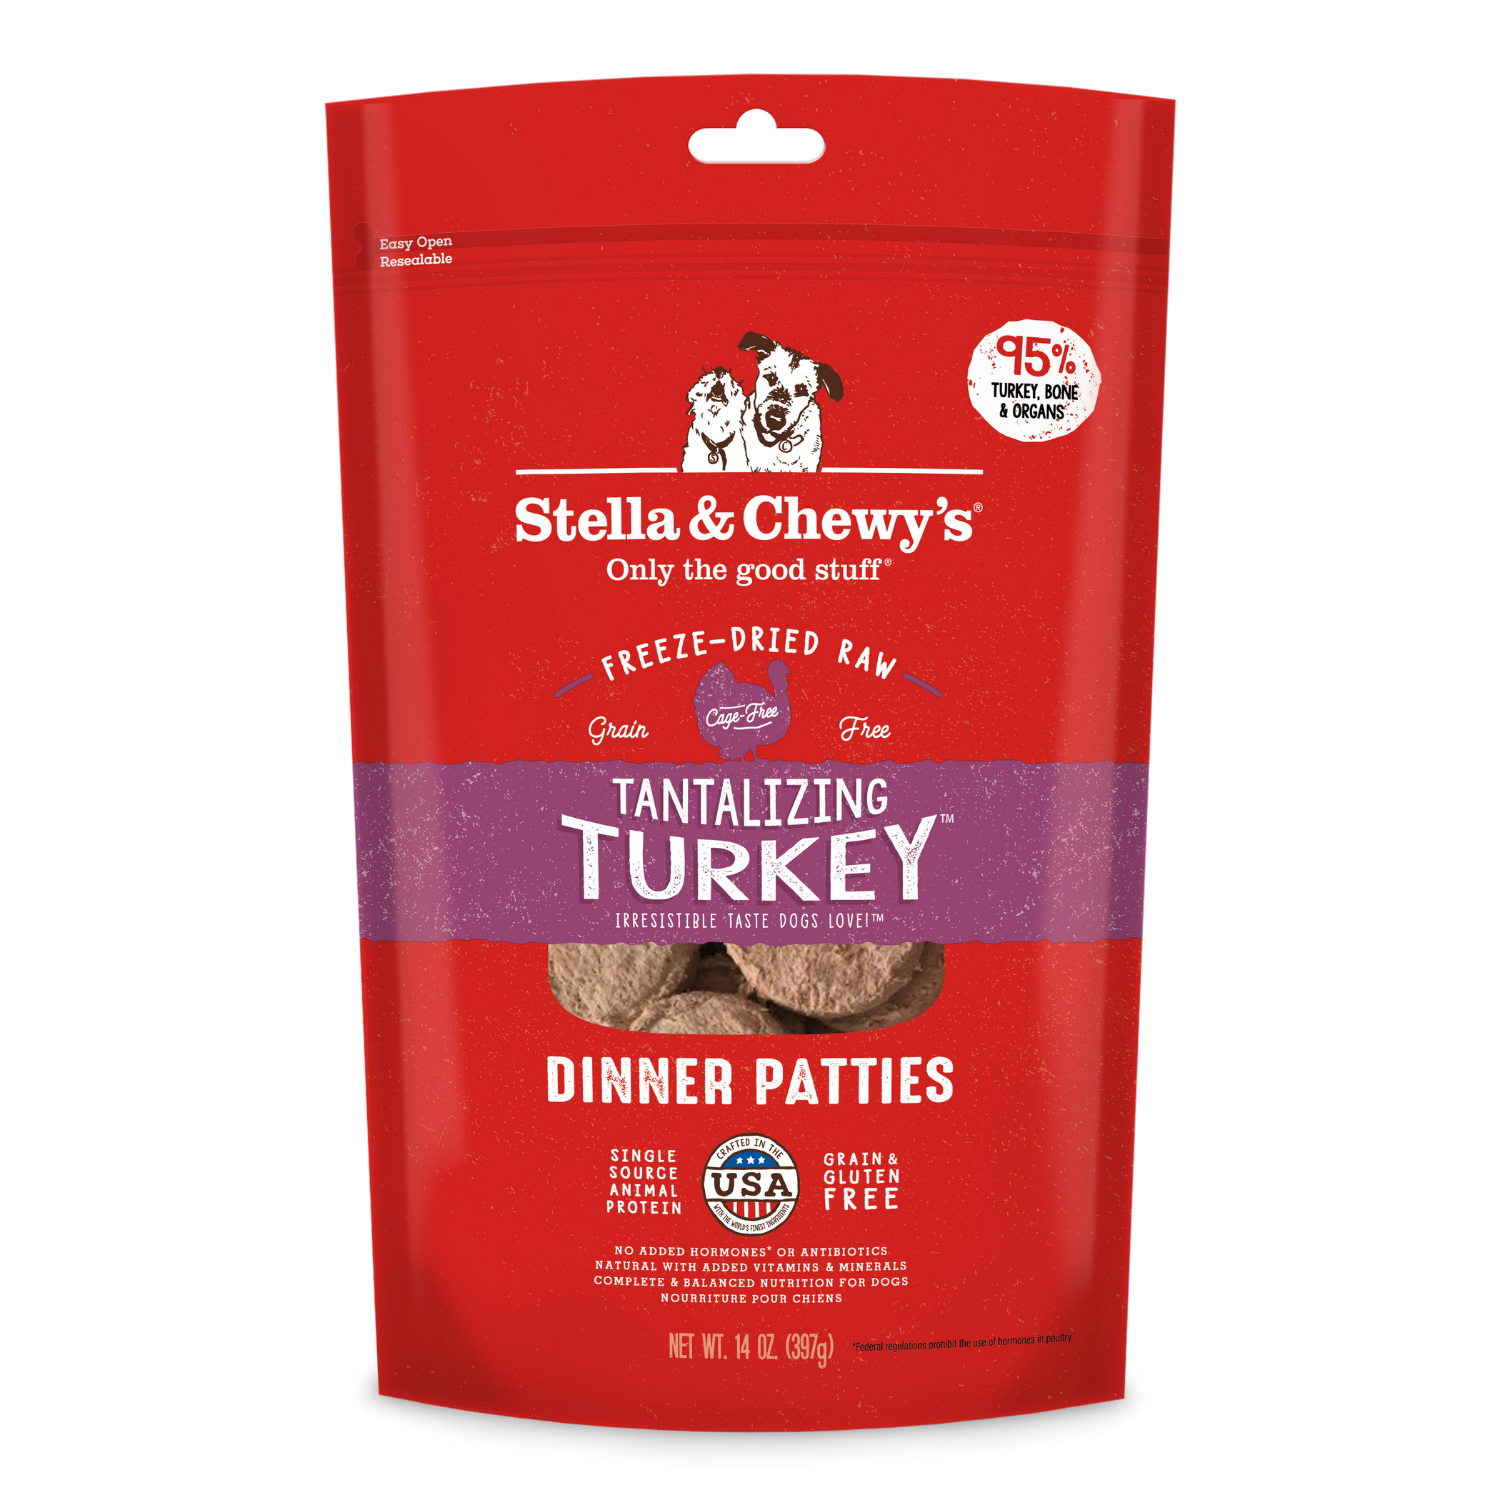 Stella & Chewy's Freeze Dried Dinner Patties (Tantalizing Turkey) - 397g